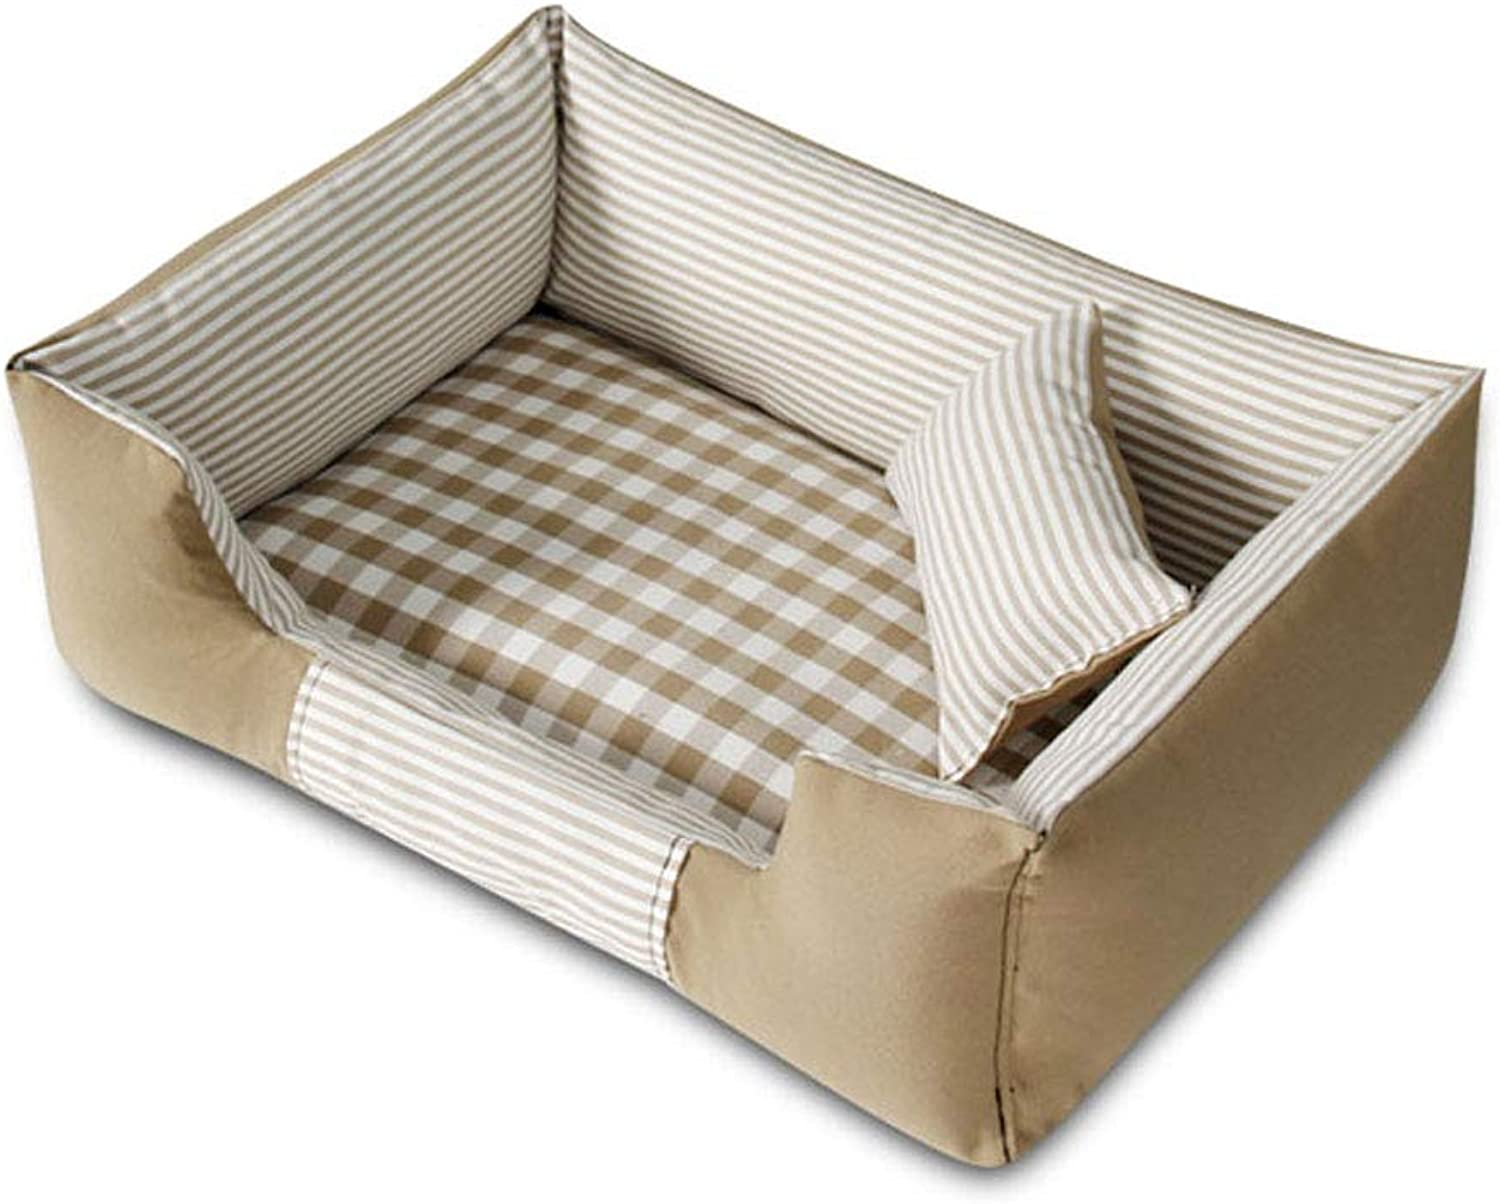 LZY pet bed Four Seasons Kennel Bite Small And Medium Pet Bed Home (color   Beige, Size   72x52cm)